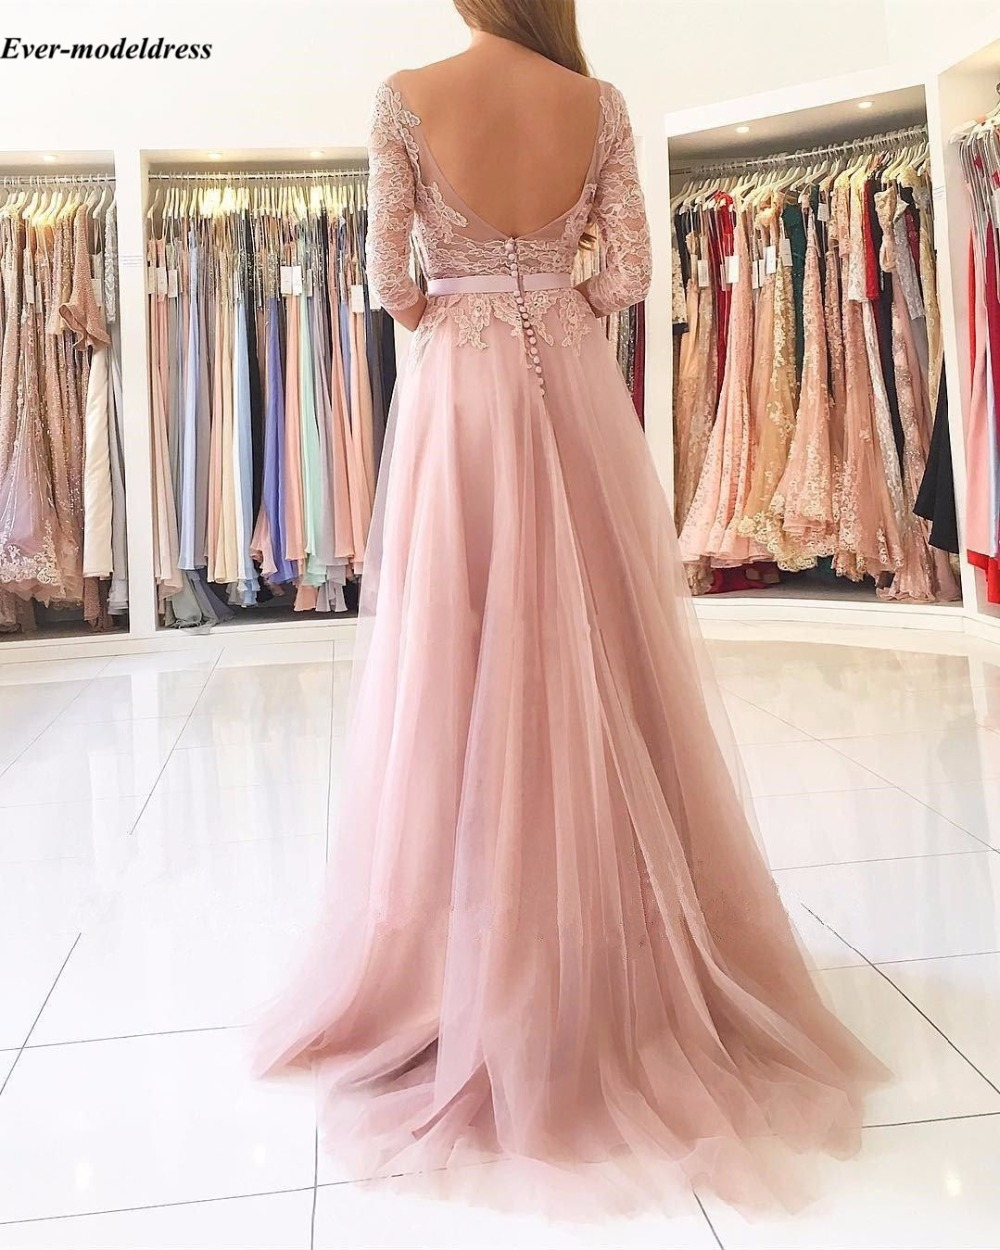 Image 3 - Blush Pink Bridesmaid Dresses 2019 Sexy A Line High Split Backless Lace Long Sleeve Floor Length Wedding Guest Prom Party Dress-in Bridesmaid Dresses from Weddings & Events